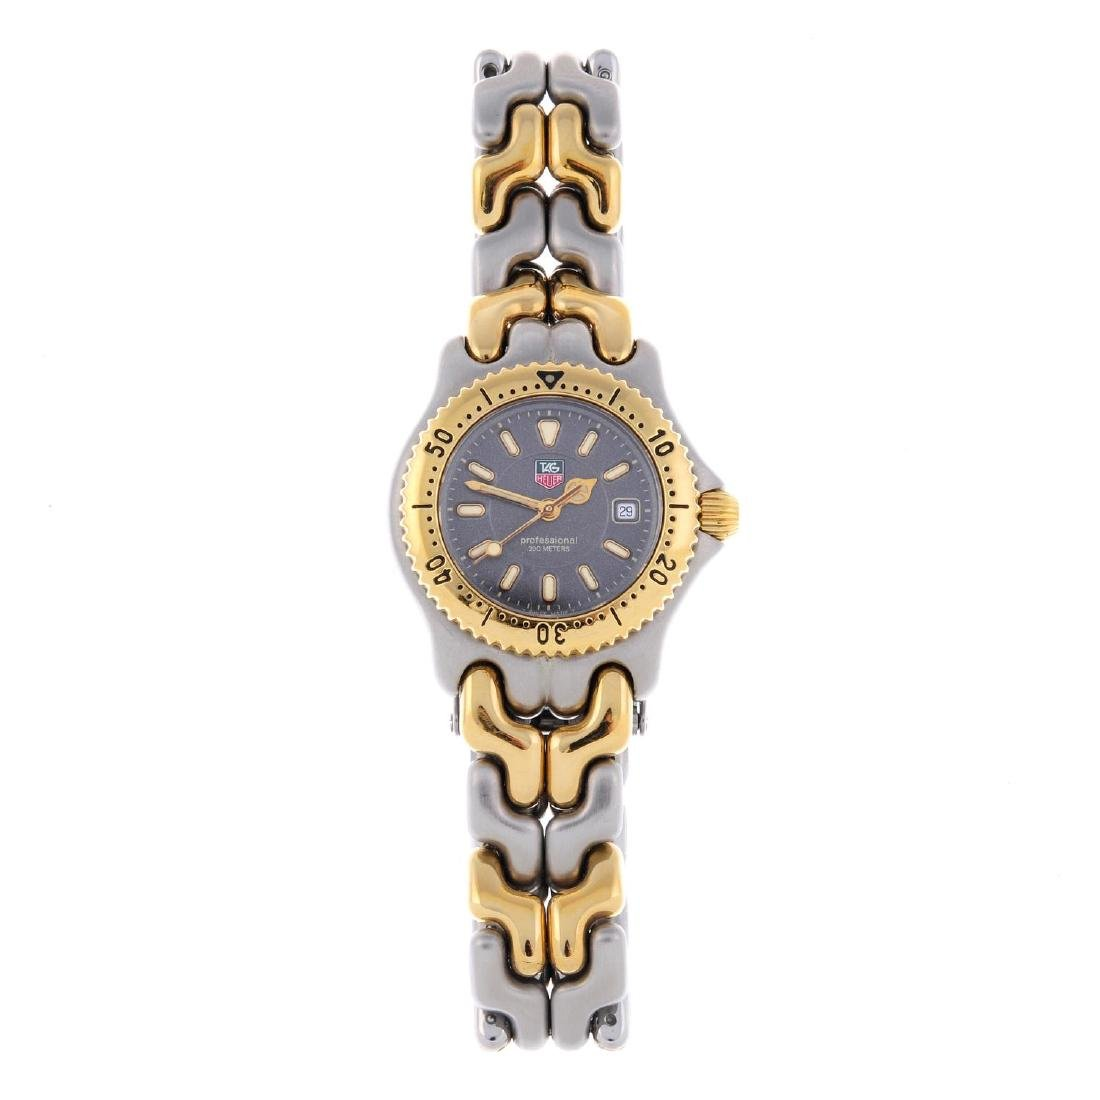 TAG HEUER - a lady's S/el bracelet watch. Stainless